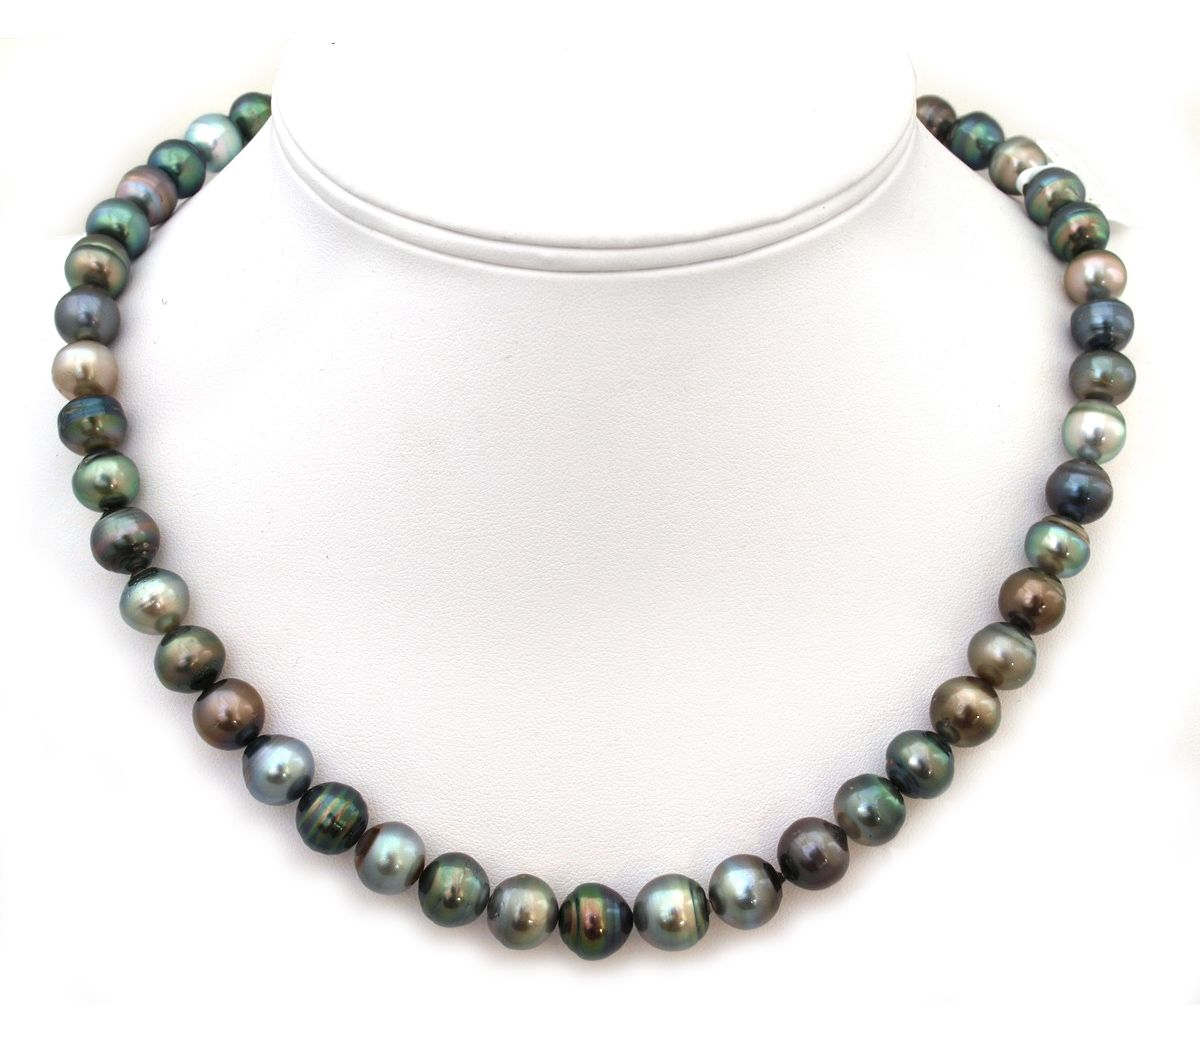 911mm Tahitian Pearl Necklace With Fancy Multicolor Pearls